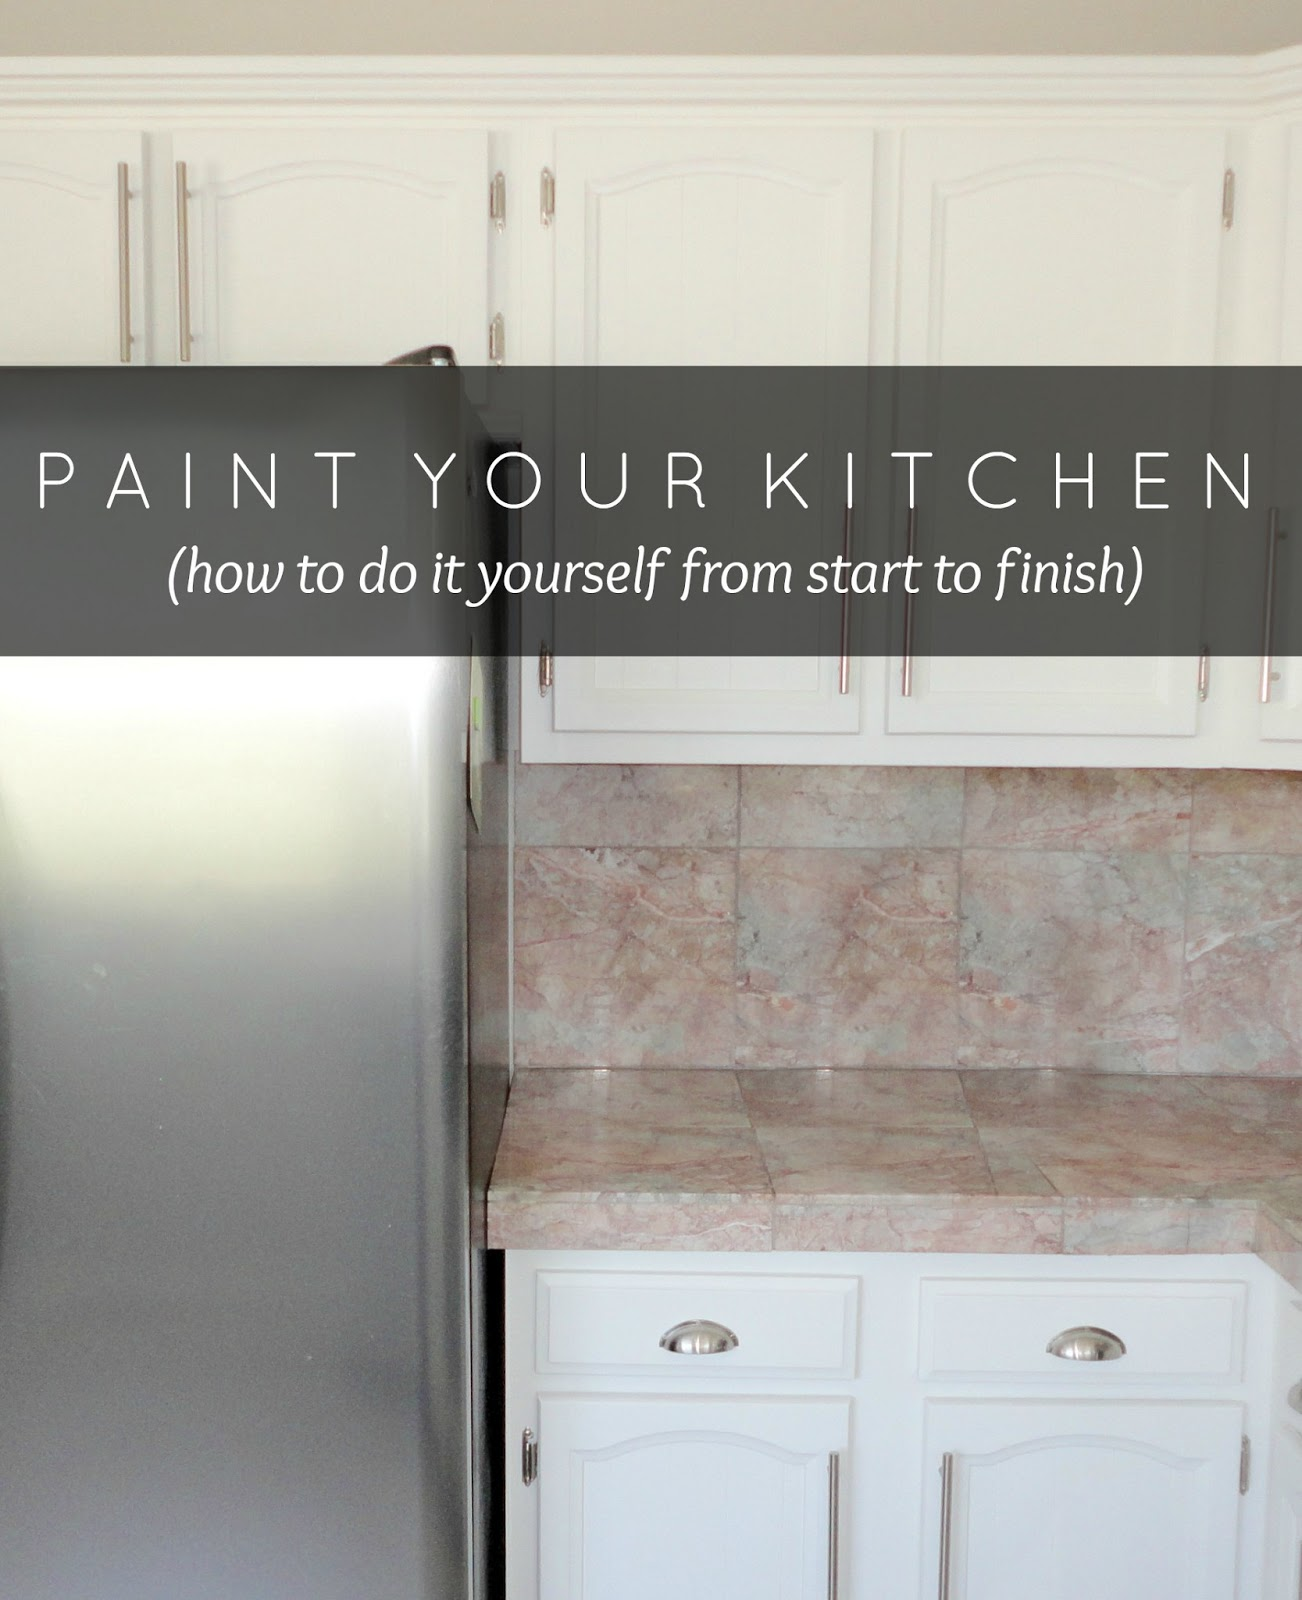 Best Paint Kitchen Cabinets Livelovediy How To Paint Kitchen Cabinets In 10 Easy Steps